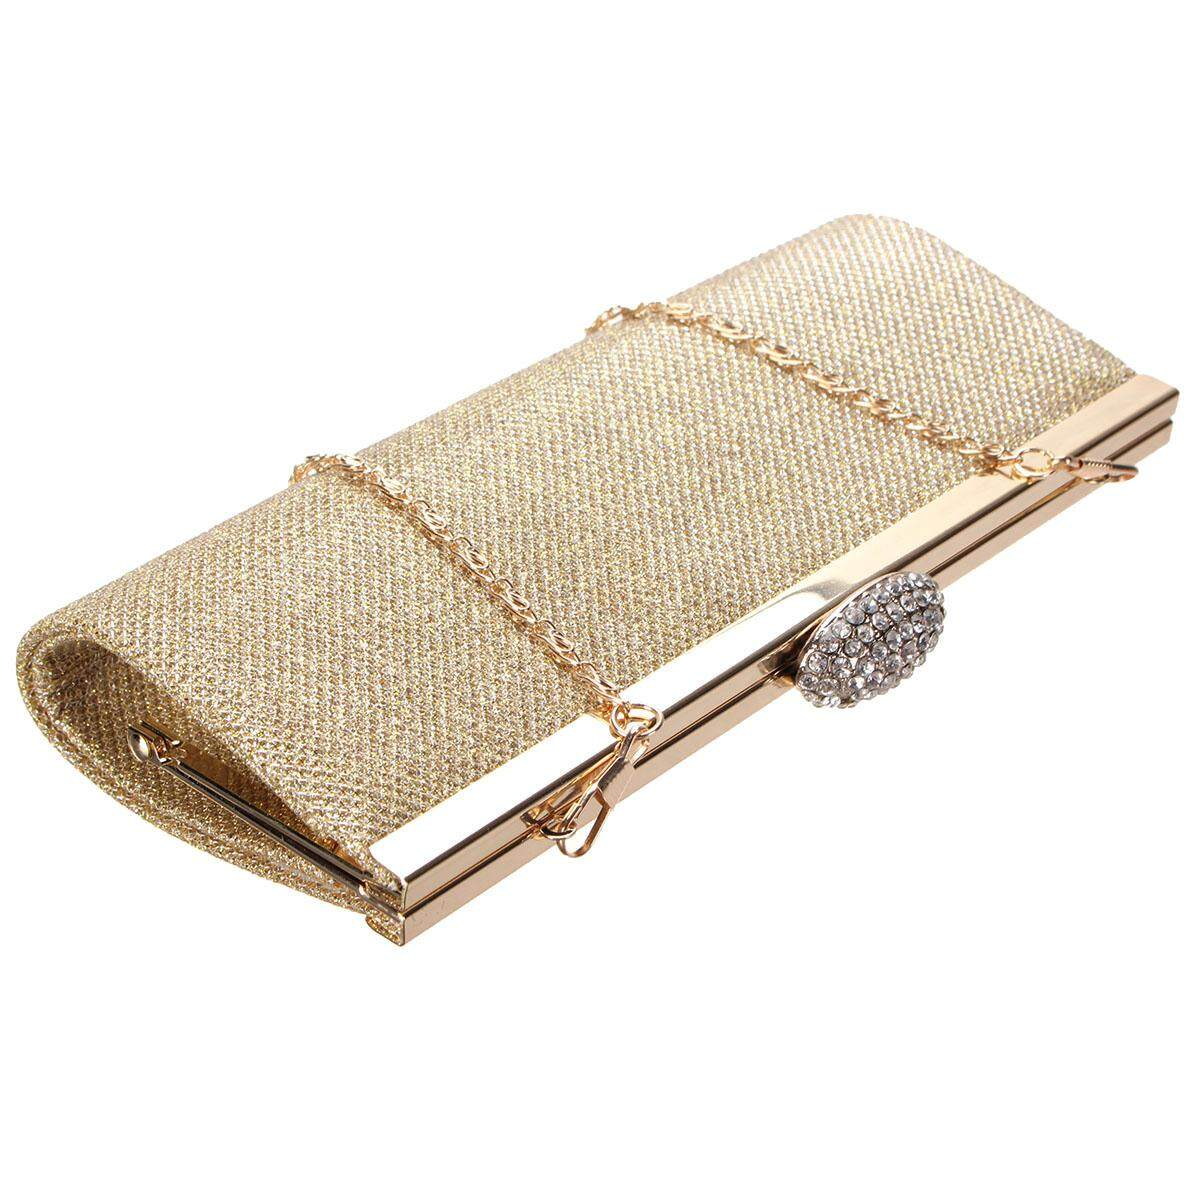 NEW WOMENS SPARKLY GLITTER CLUTCH BAG SILVER GOLD BRIDAL PROM PARTY PURSE Gold